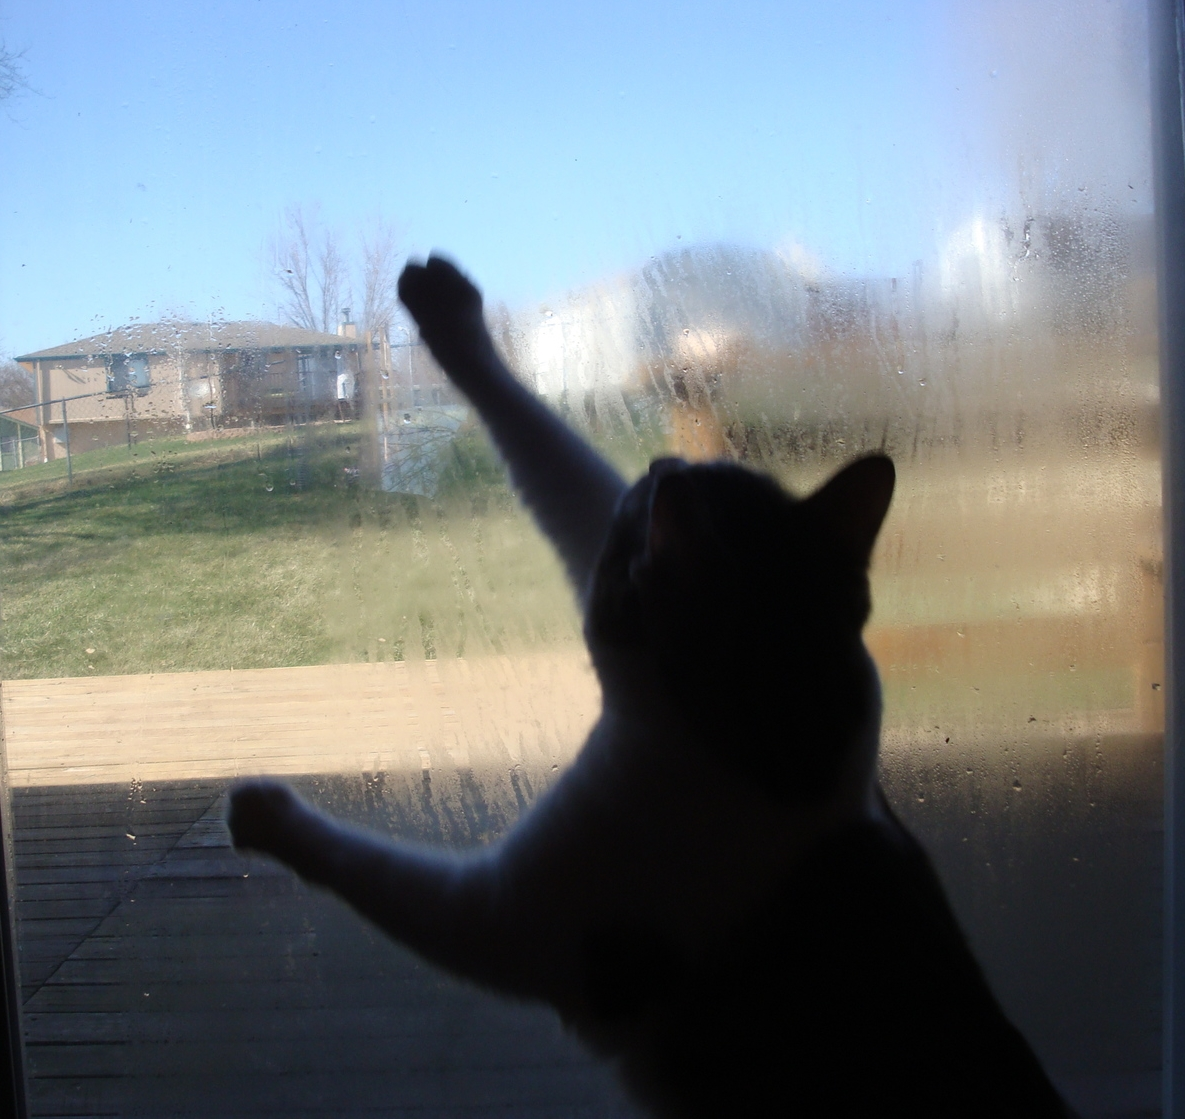 A failed seal ruins your view. Call us for an estimate on thermal pane replacement.